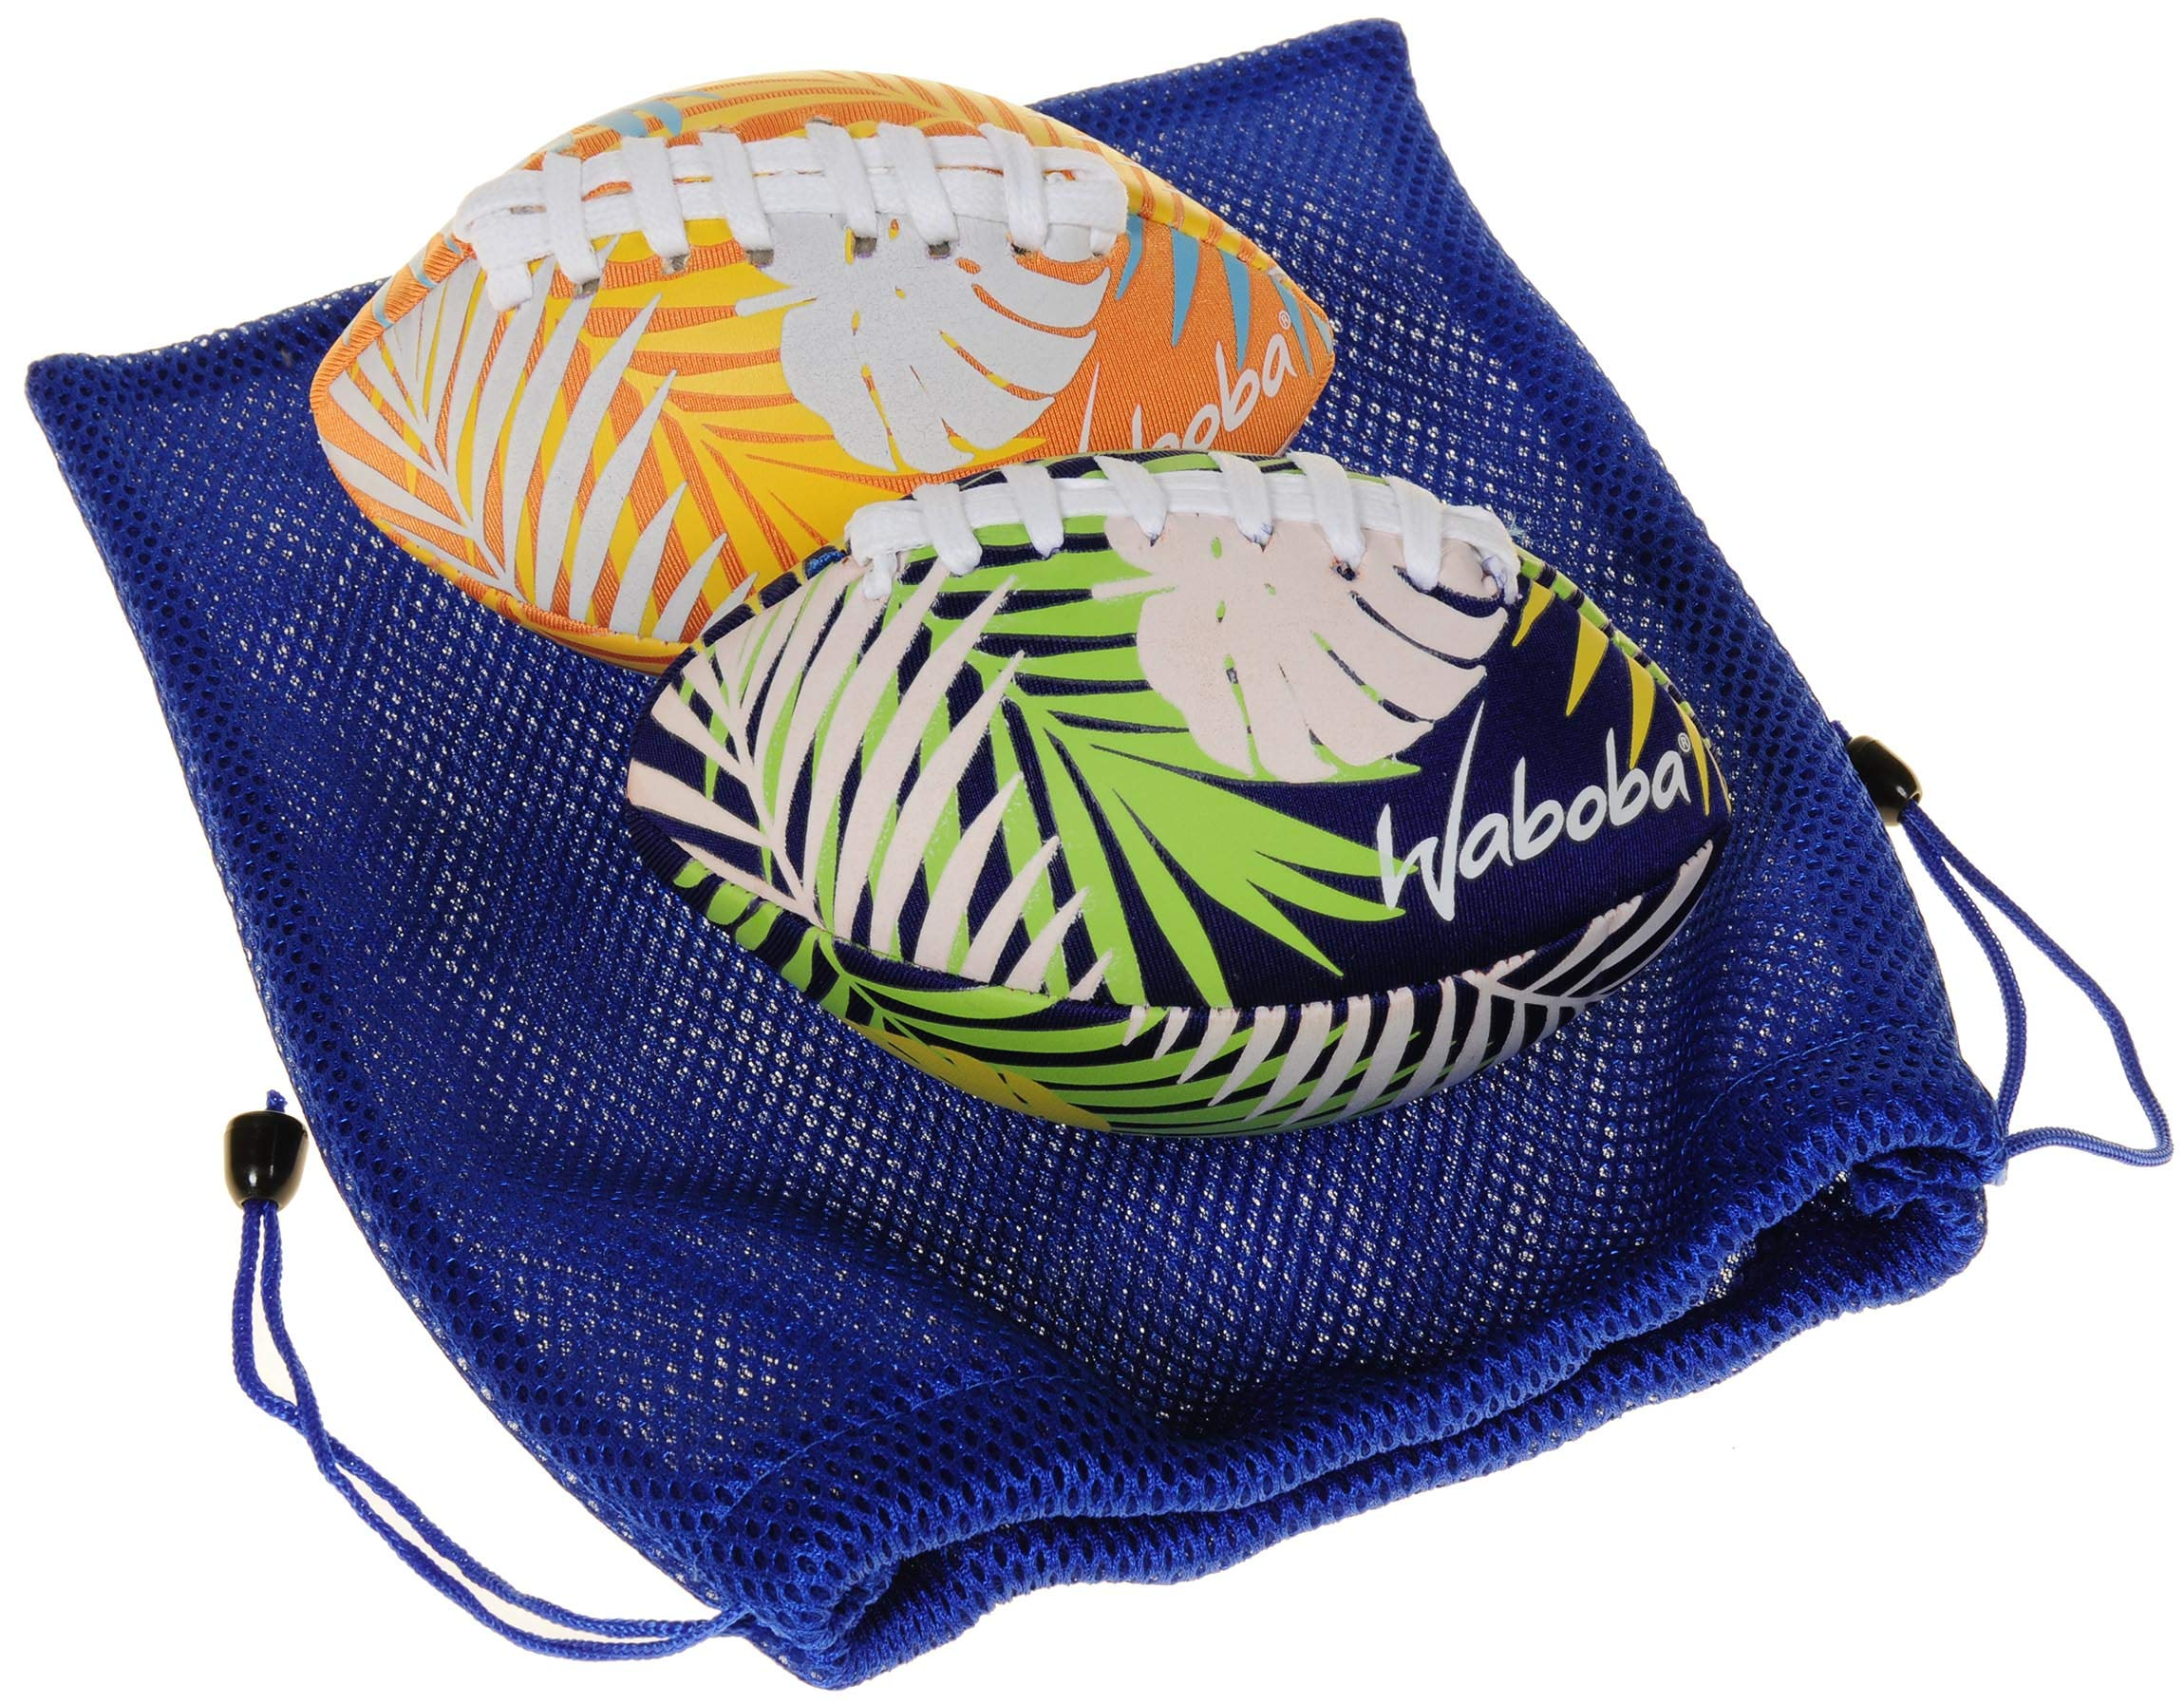 Waboba Color Changing Water Football 6'' // Bundle of 2 Footballs (Random Colors) // Bonus Blue Nylon Mesh Carry Bag// Bundled Items by Waboba